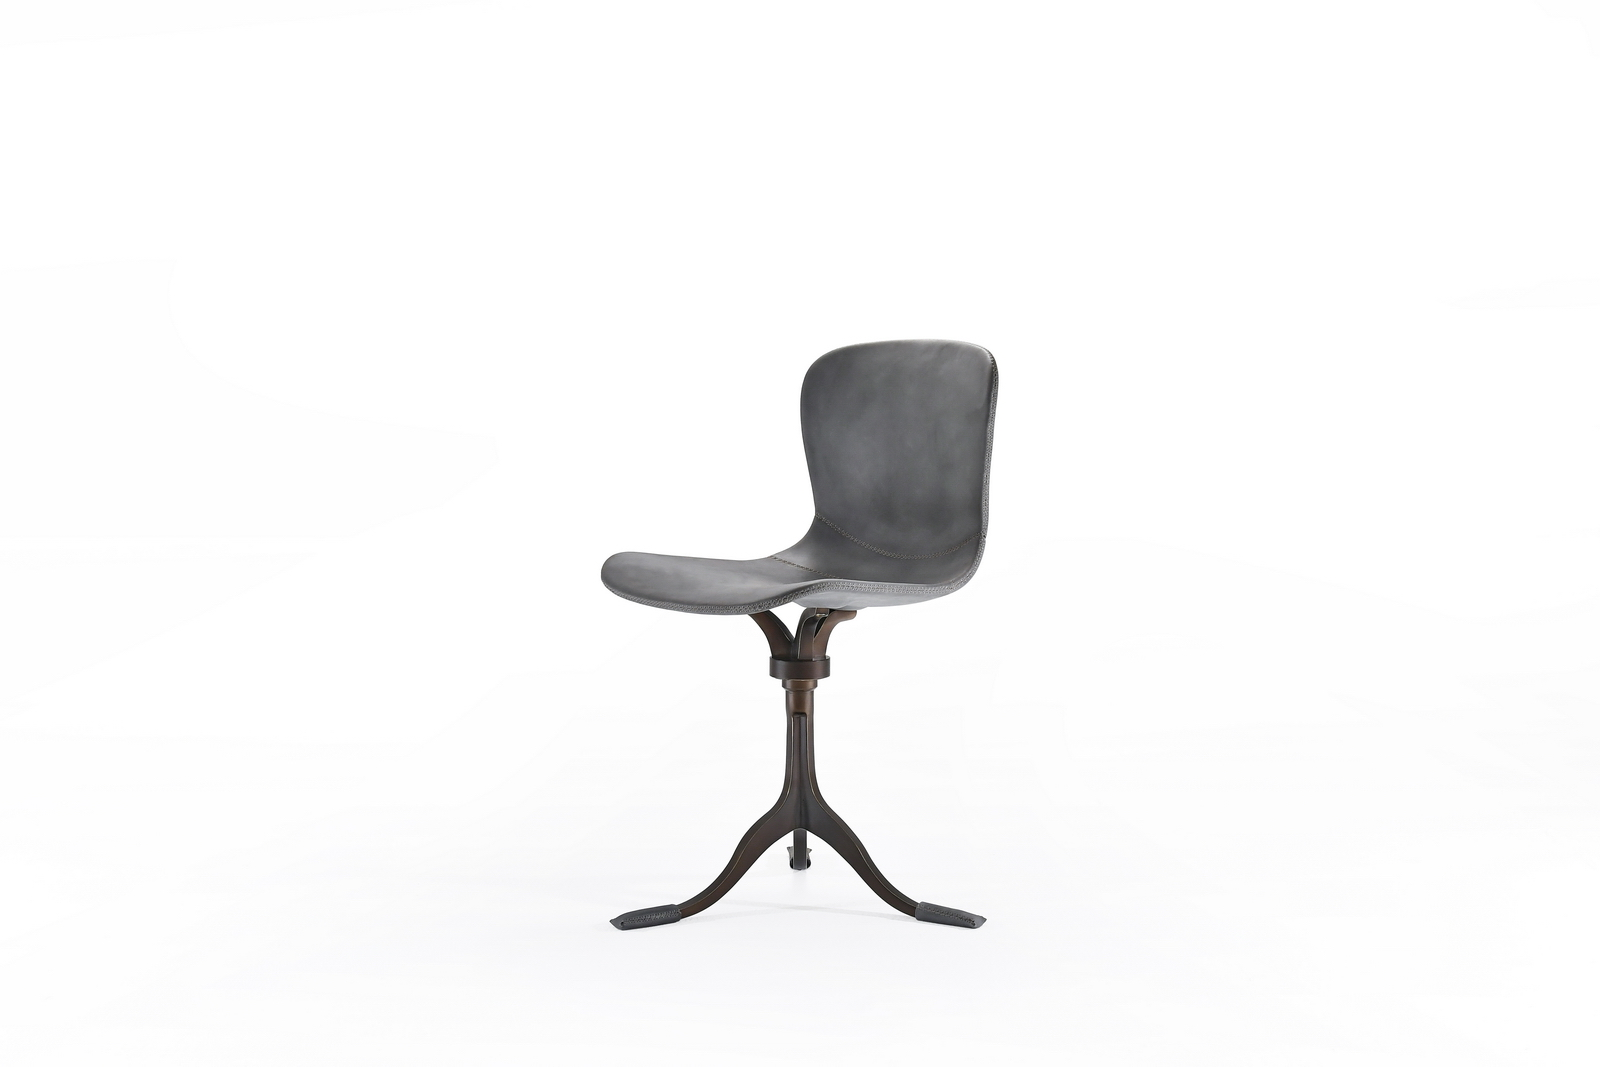 PTendercool-Chair-PT43-BS3-GY-210615-03